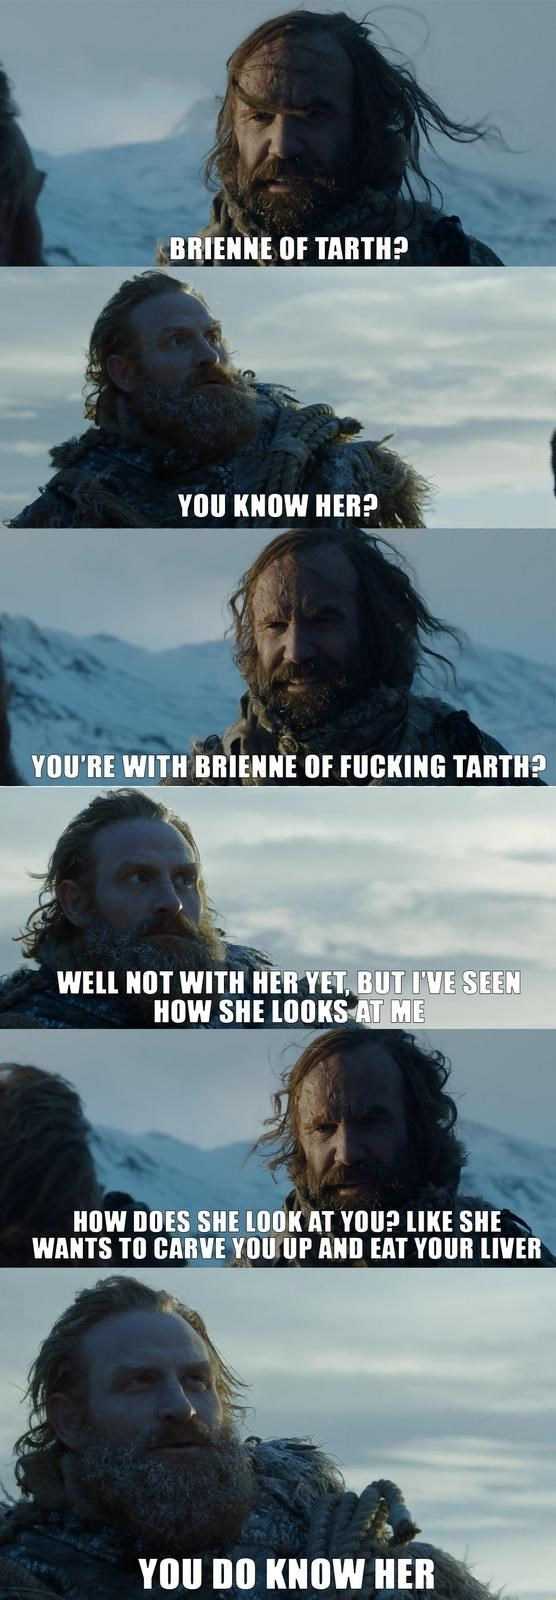 Text - BRIENNE OF TARTH? YOU KNOW HER? YOU'RE WITH BRIENNE OF FUCKING TARTH? WELL NOT WITH HER YET, BUT I'VE SEEN HOW SHE LOOKS AT ME HOW DOES SHE LOOK AT YOUP LIKE SHE WANTS TO CARVE YOU UP AND EAT YOUR LIVER YOU DO KNOW HER